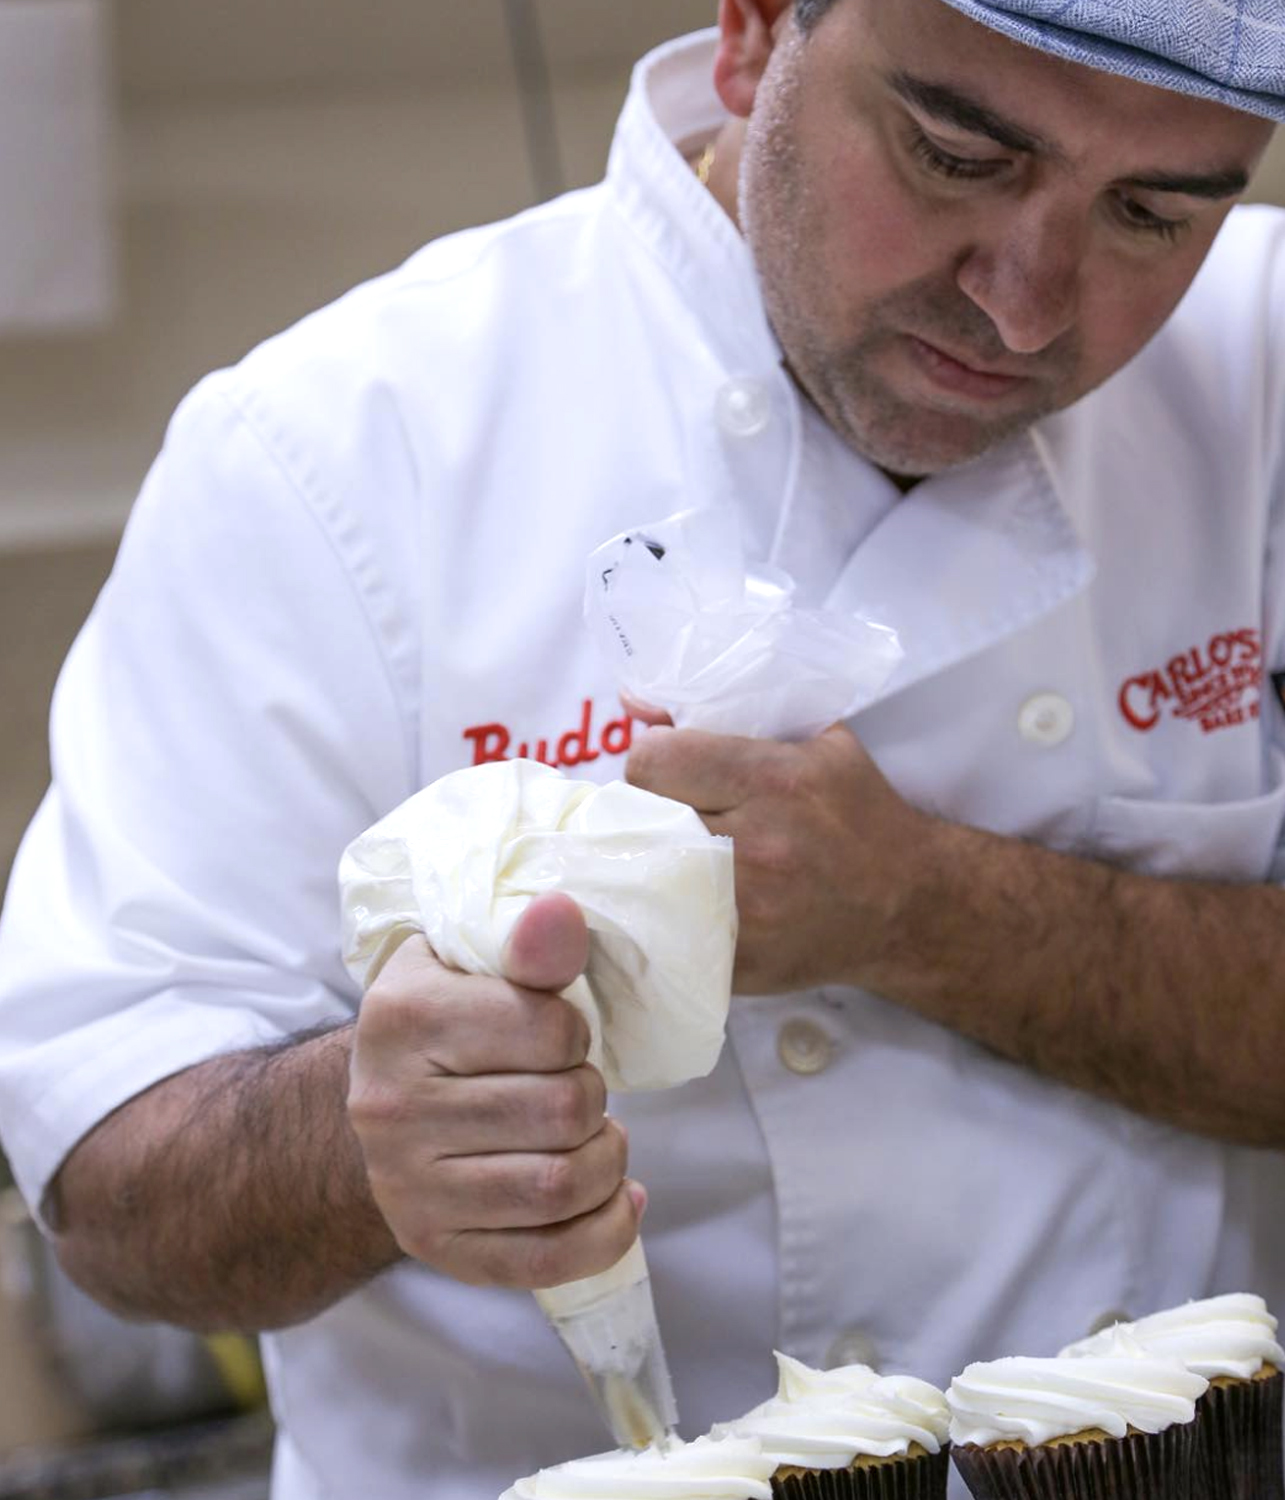 Buddy-Valastro-BIO-PHOTO-3.jpg